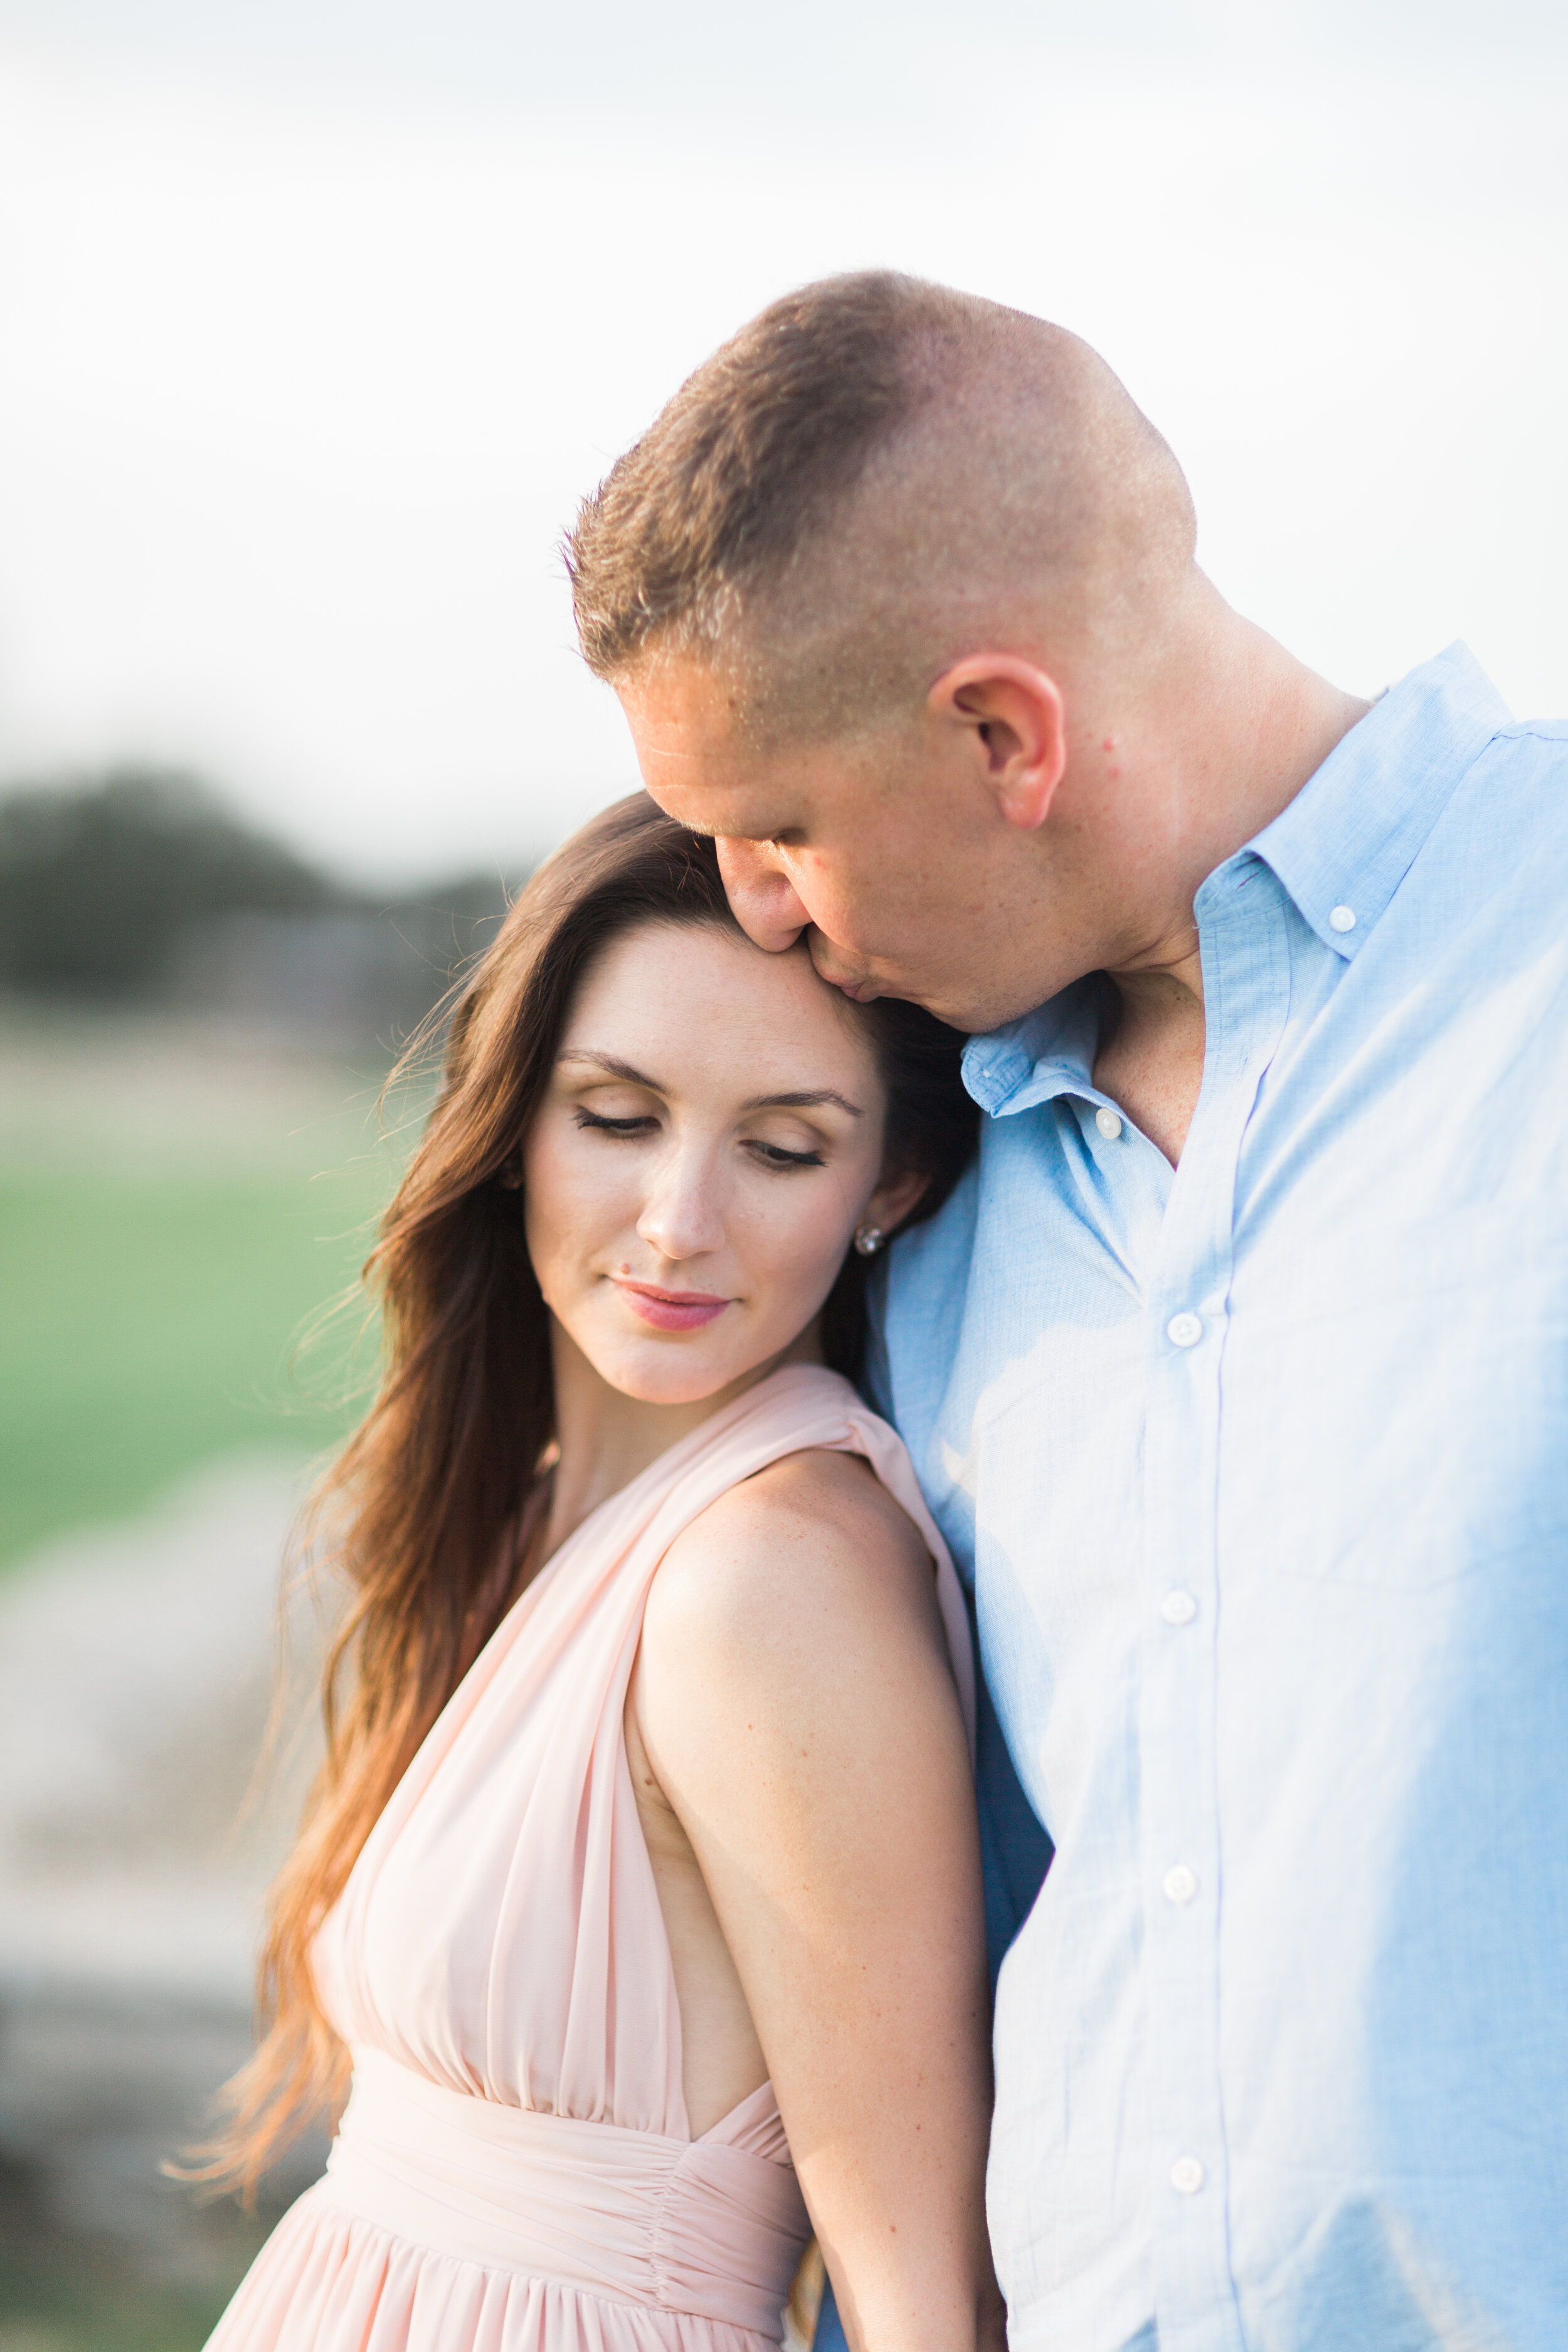 Taylor_TJ_St_Augustine_Engagement_Photography_Downtown_St_Augustine_Photographer__009.jpg